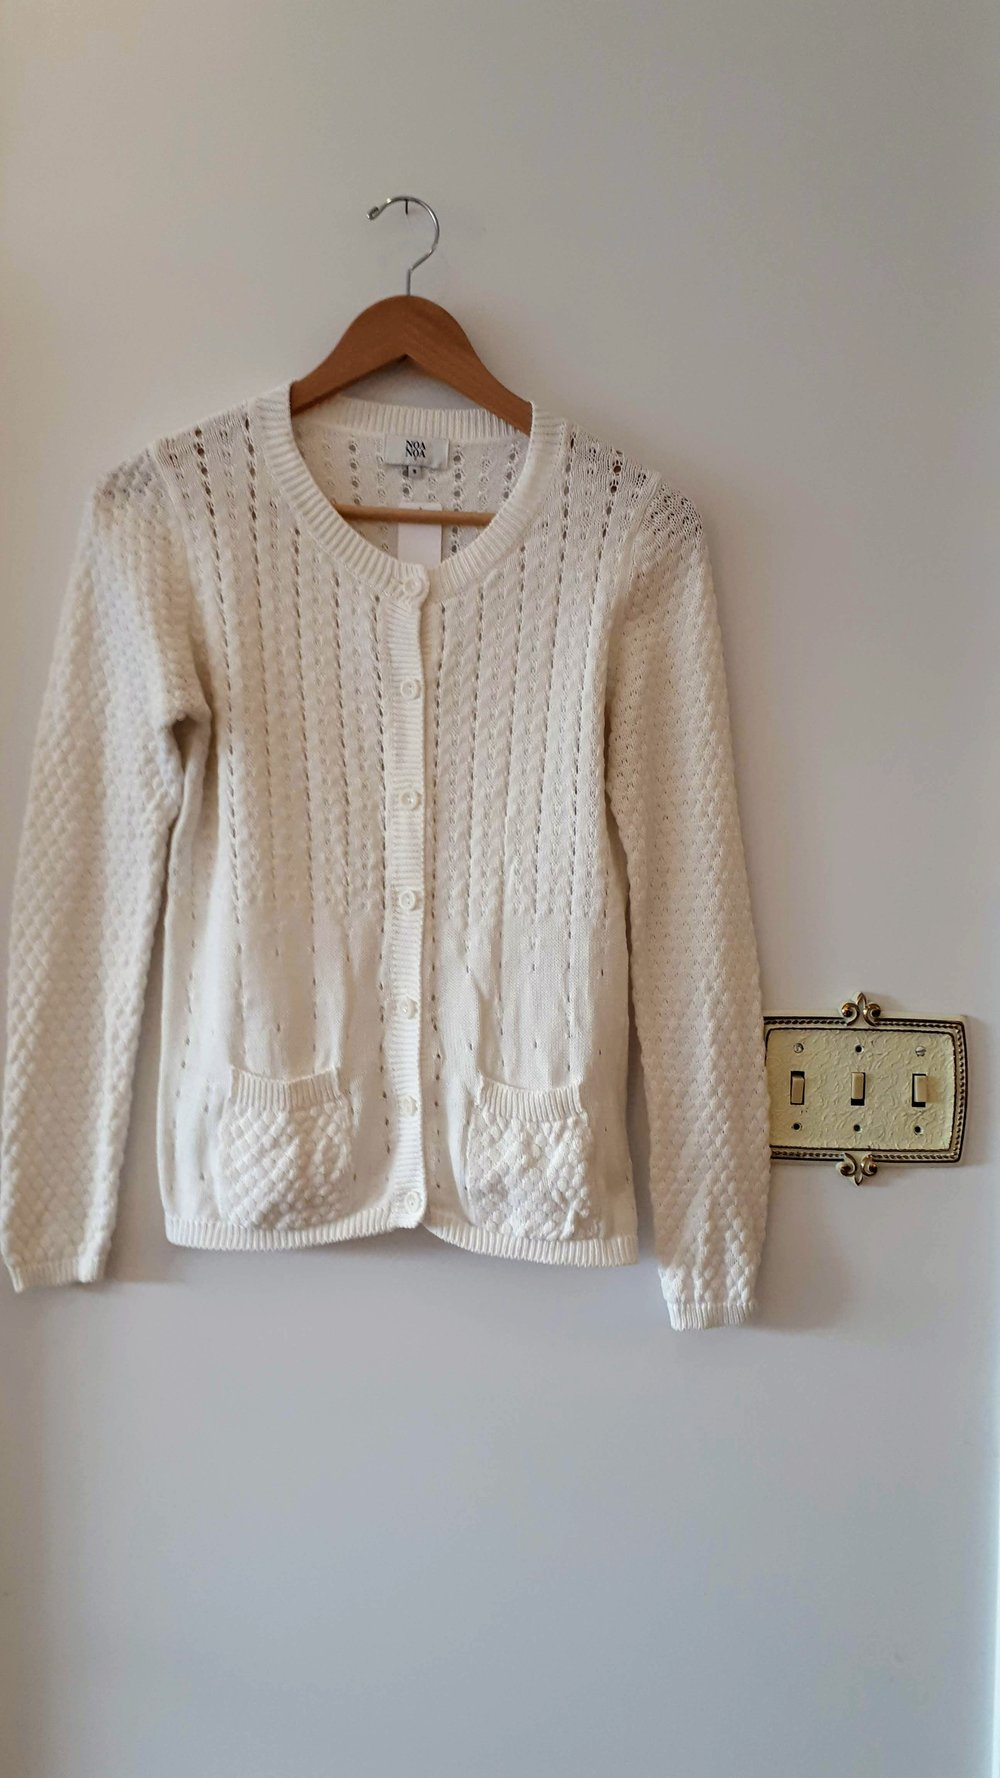 Noa Noa sweater; Size S, $28